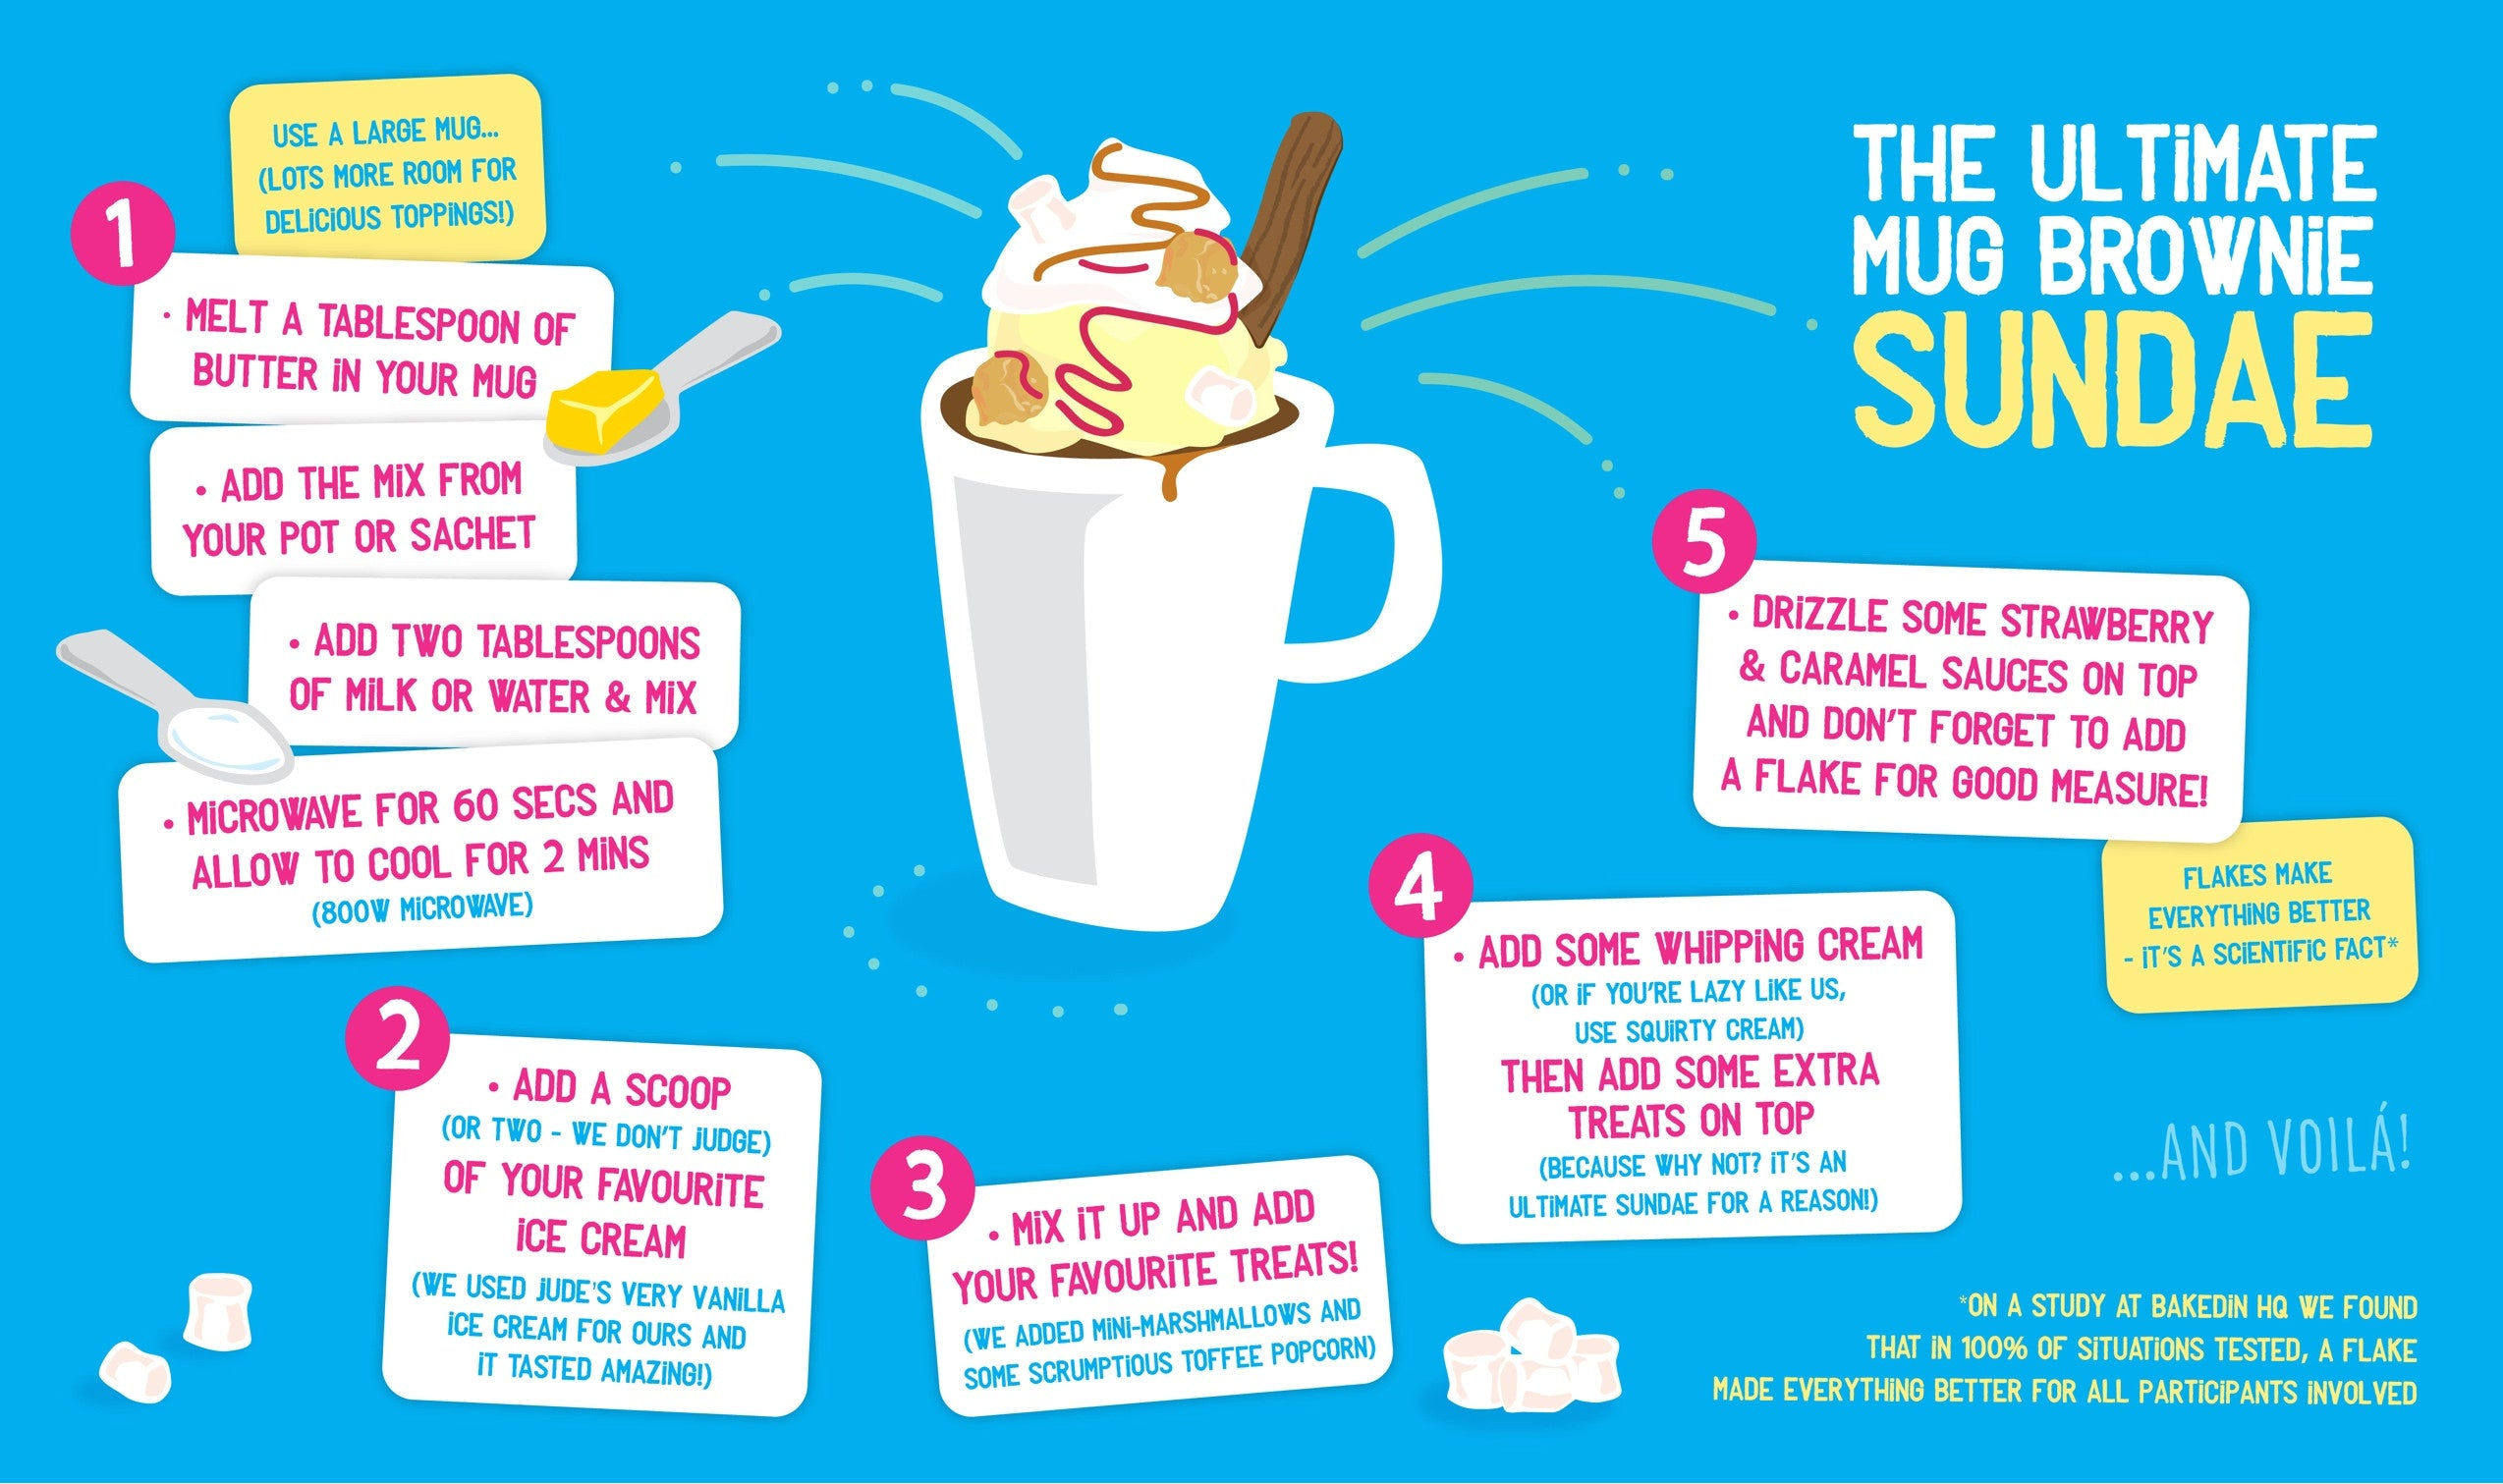 how to make the ultimate brownie sundae in a mug in 2 minutes